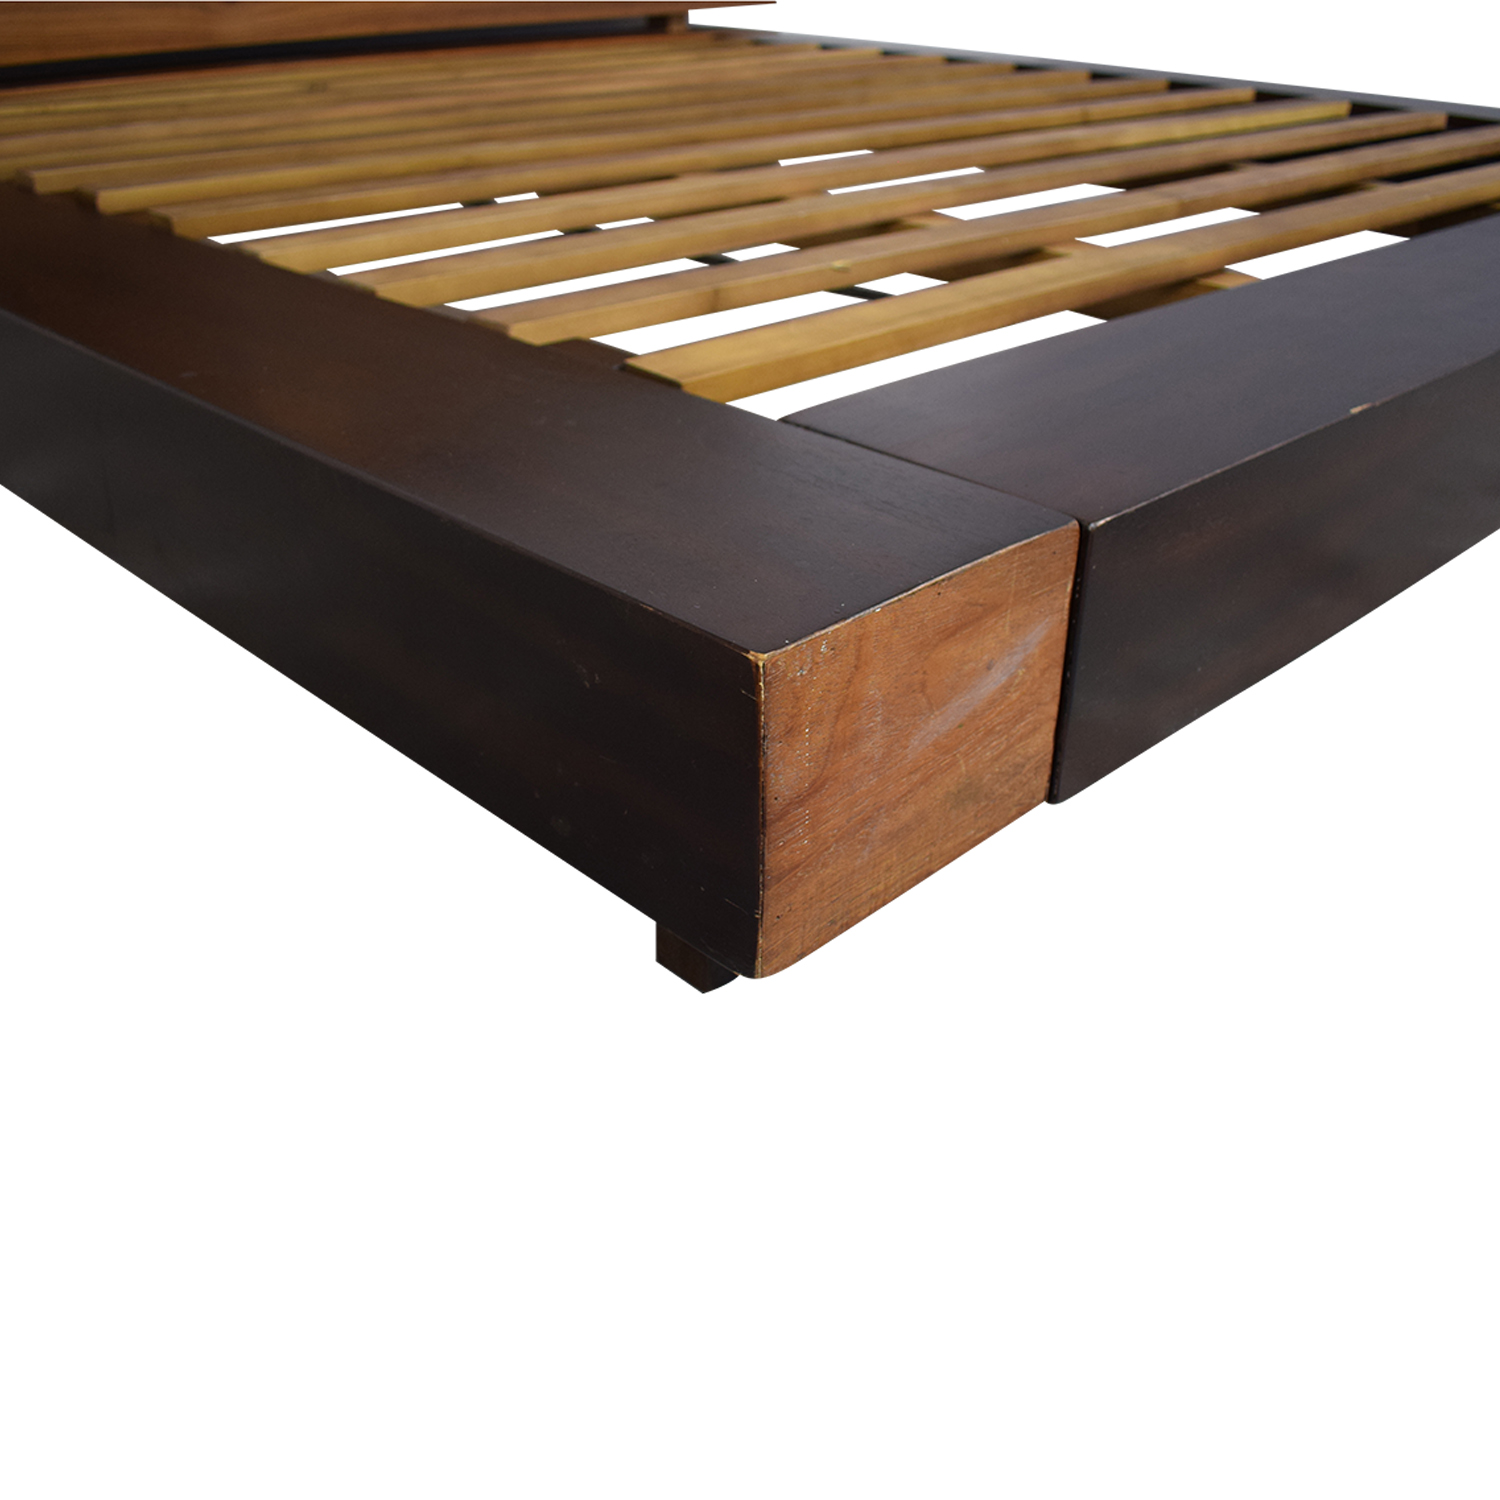 ABC Carpet & Home ABC Carpet &  Home King Size Edge Rustic Slat Bed price